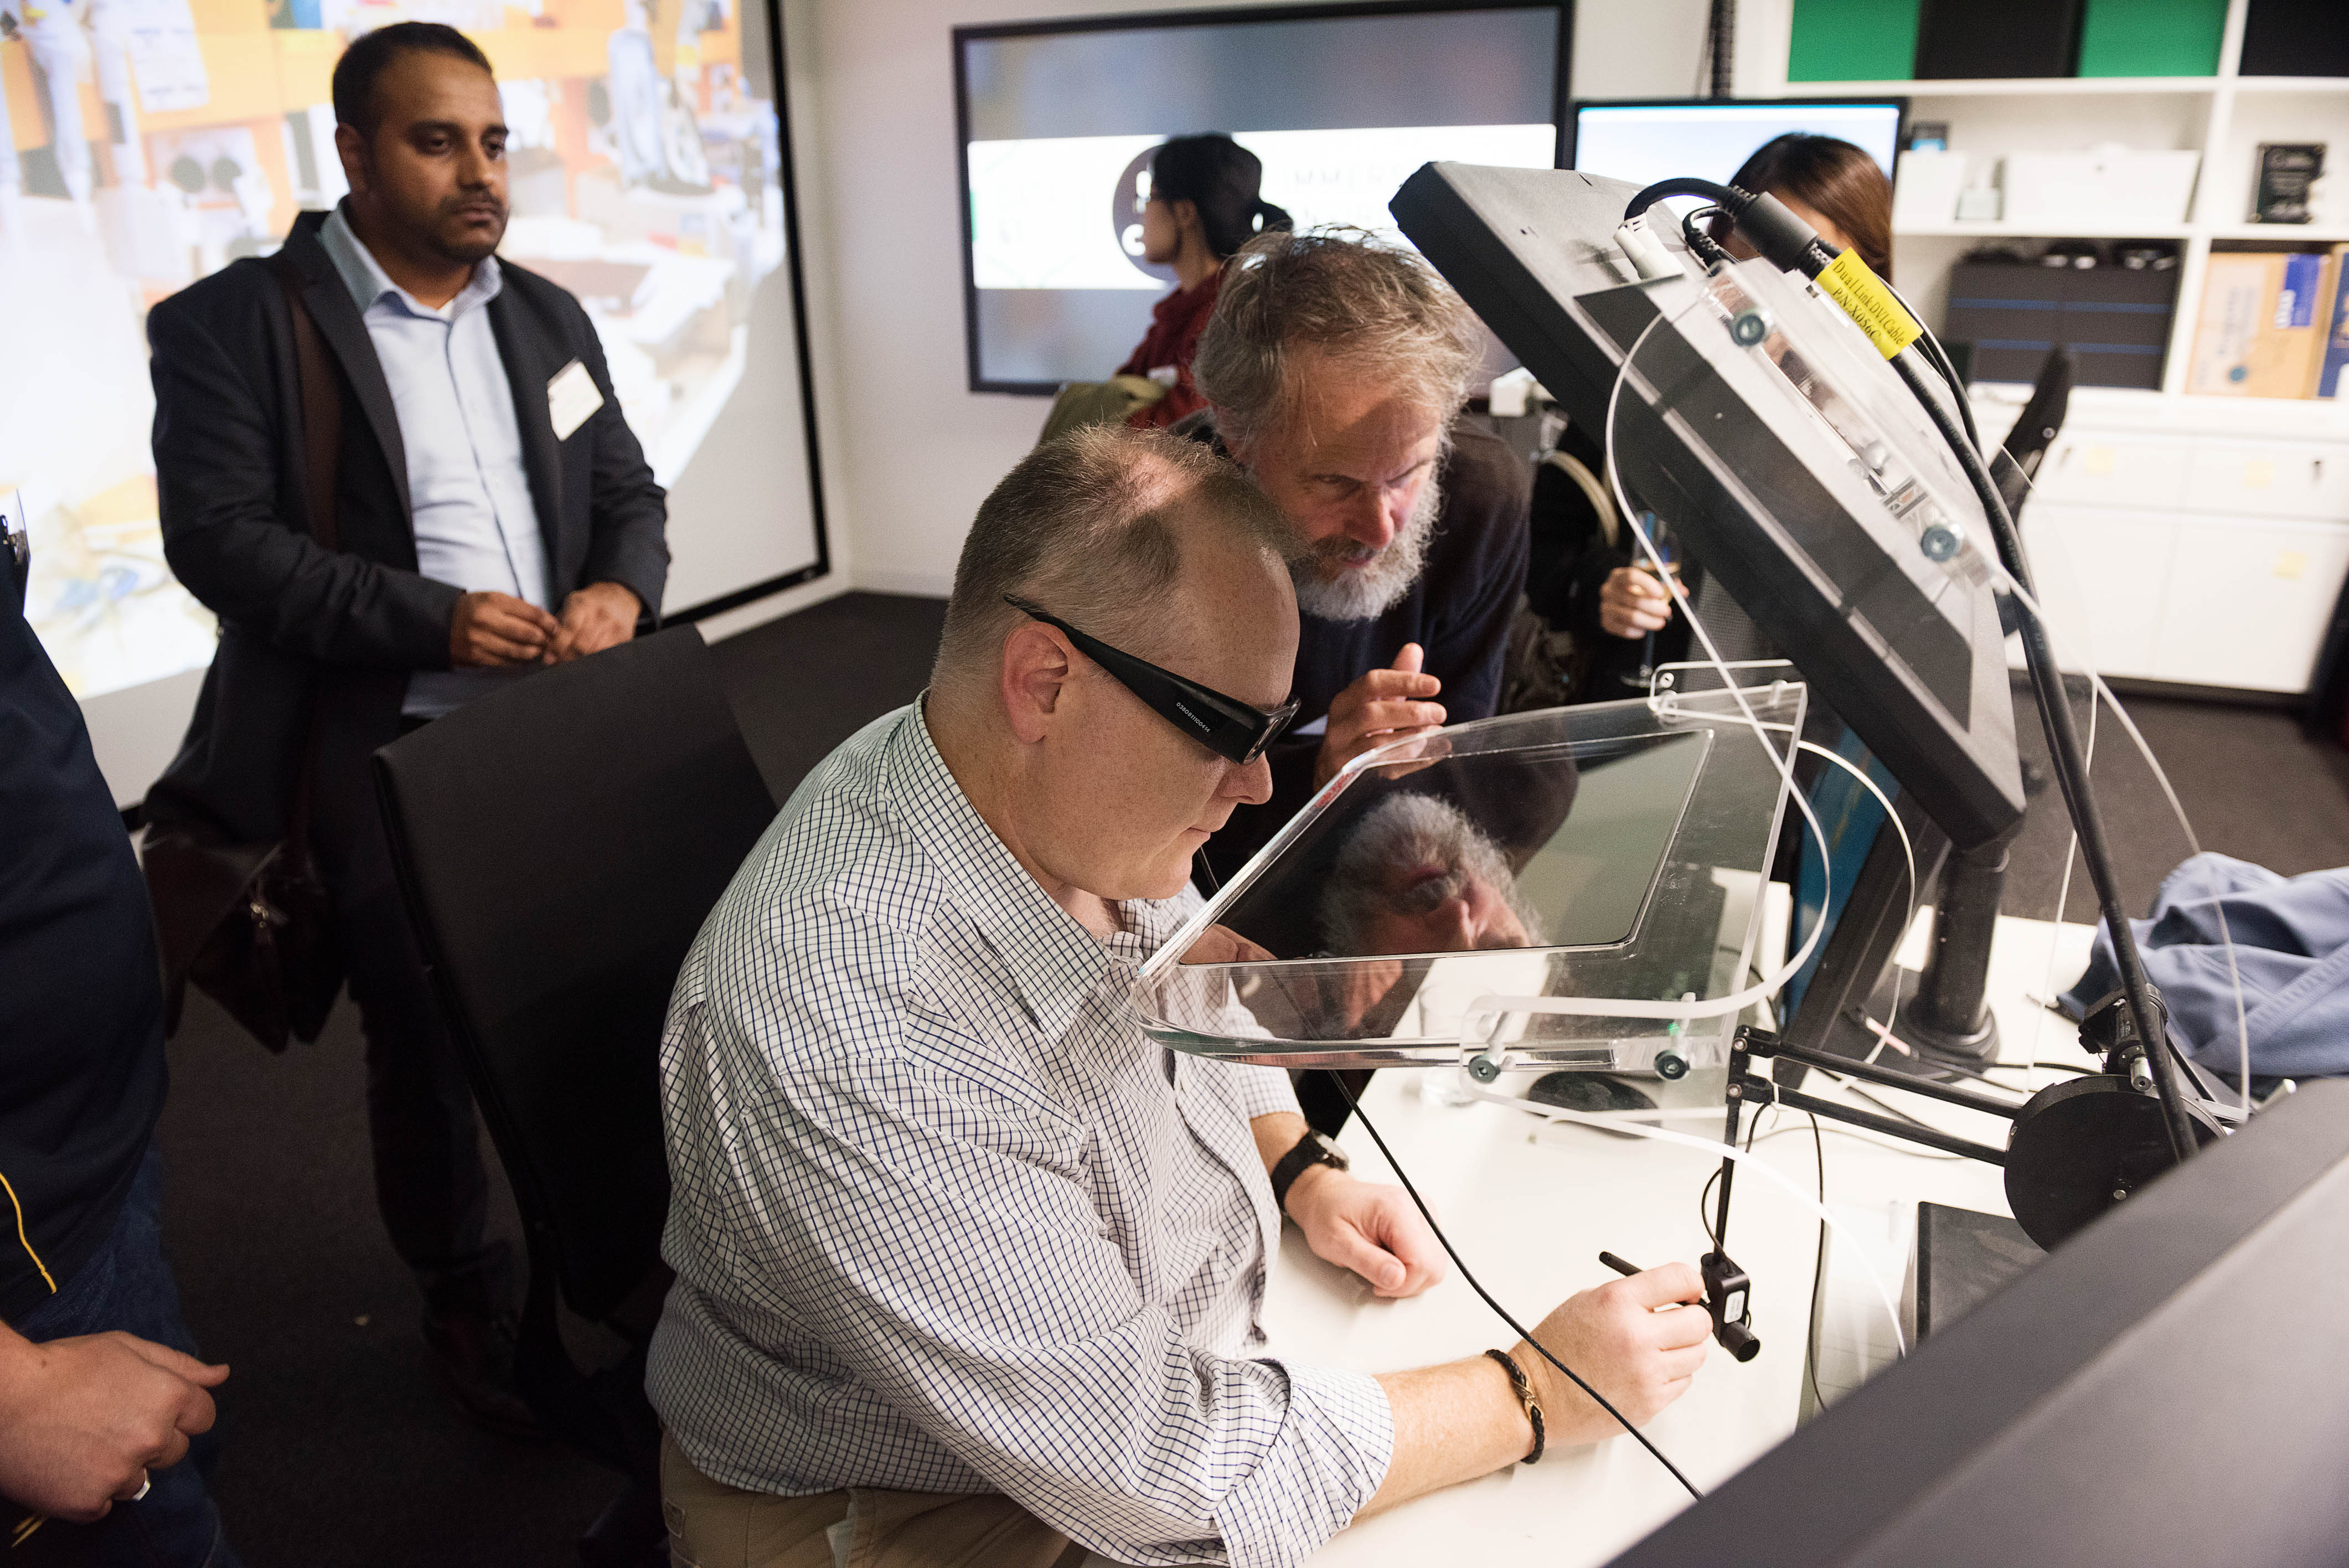 People sitting at a desk demonstrating AR and VR technology.